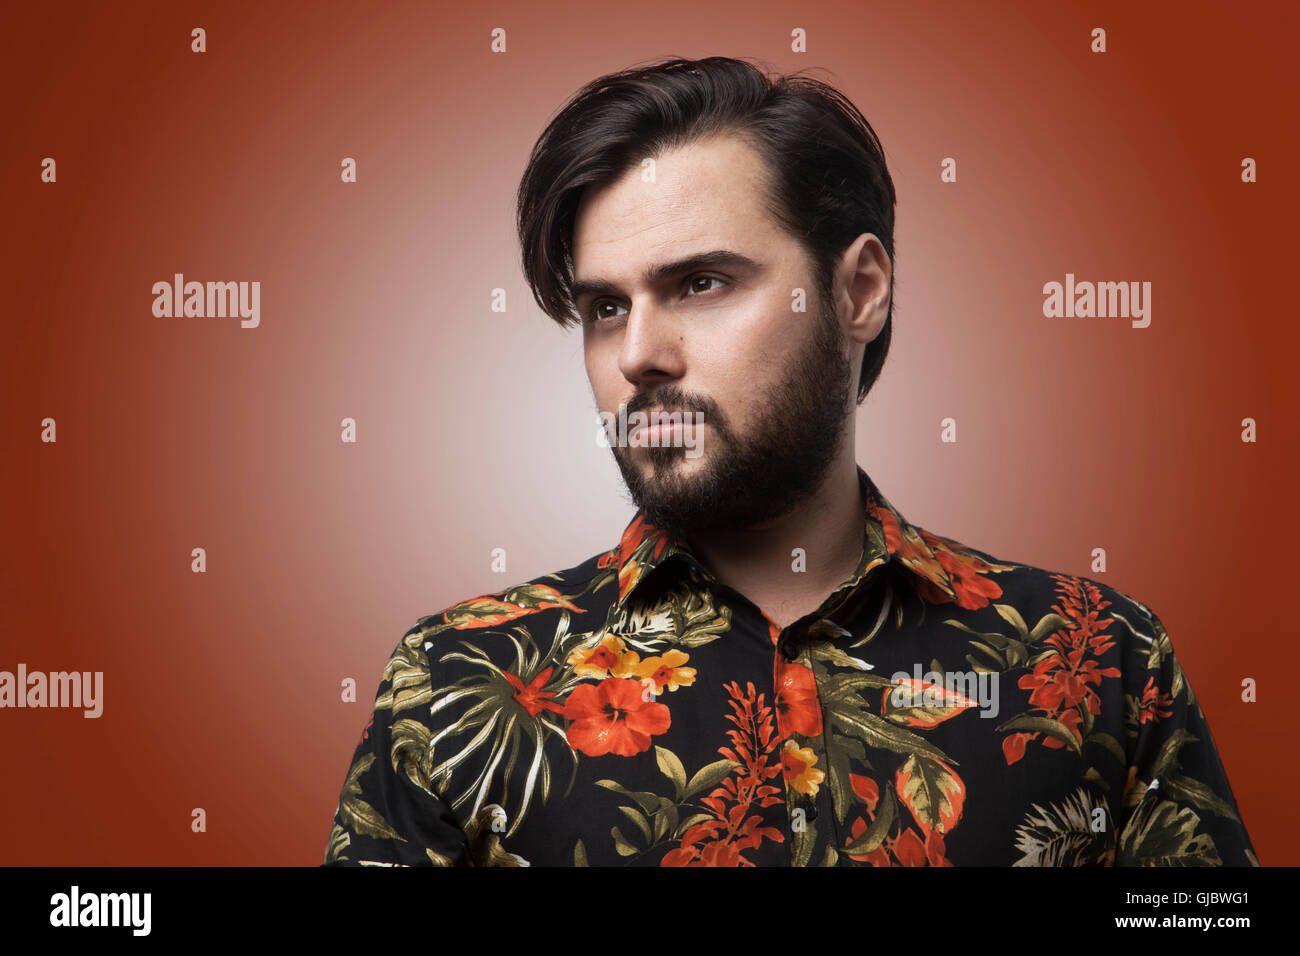 Portrait Handsome Bearded Man Wearing Stylish Color Shirt.Beauty,Lifestyle,People Concept Photo.Adult Serious Hipster - Stock Image